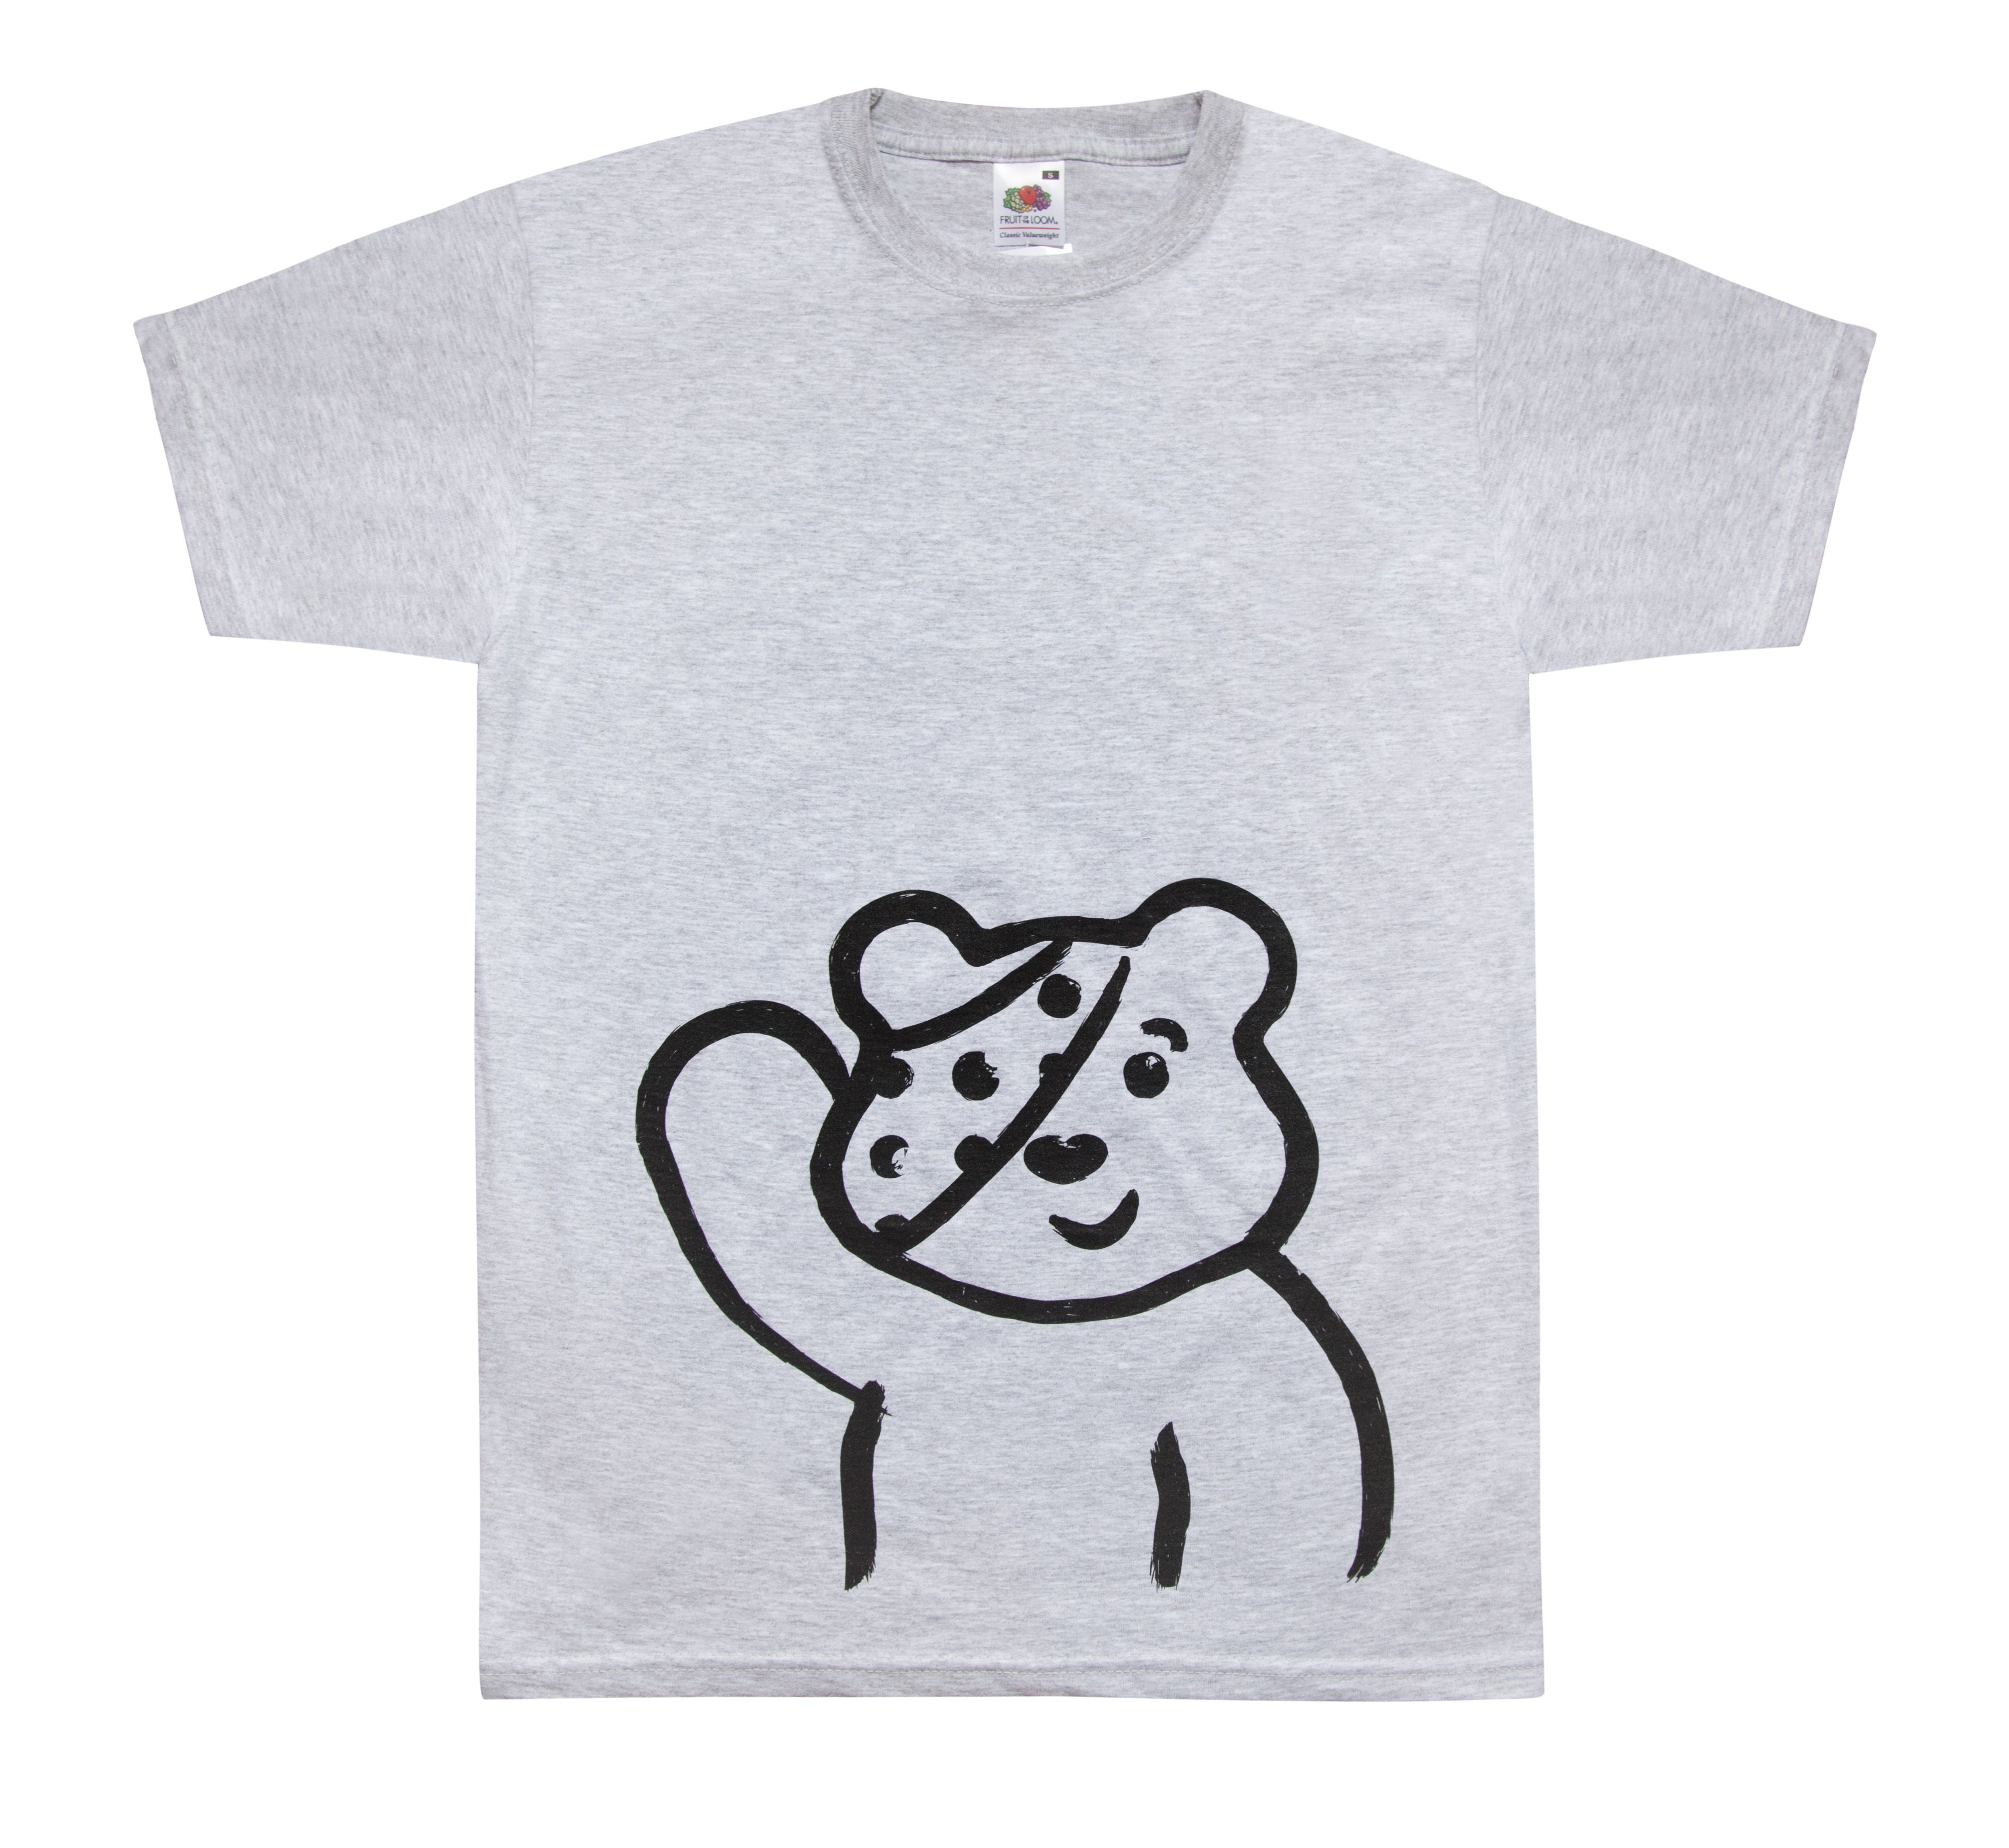 Now adults can look just as stylish as kids in the new Pudsey t ...